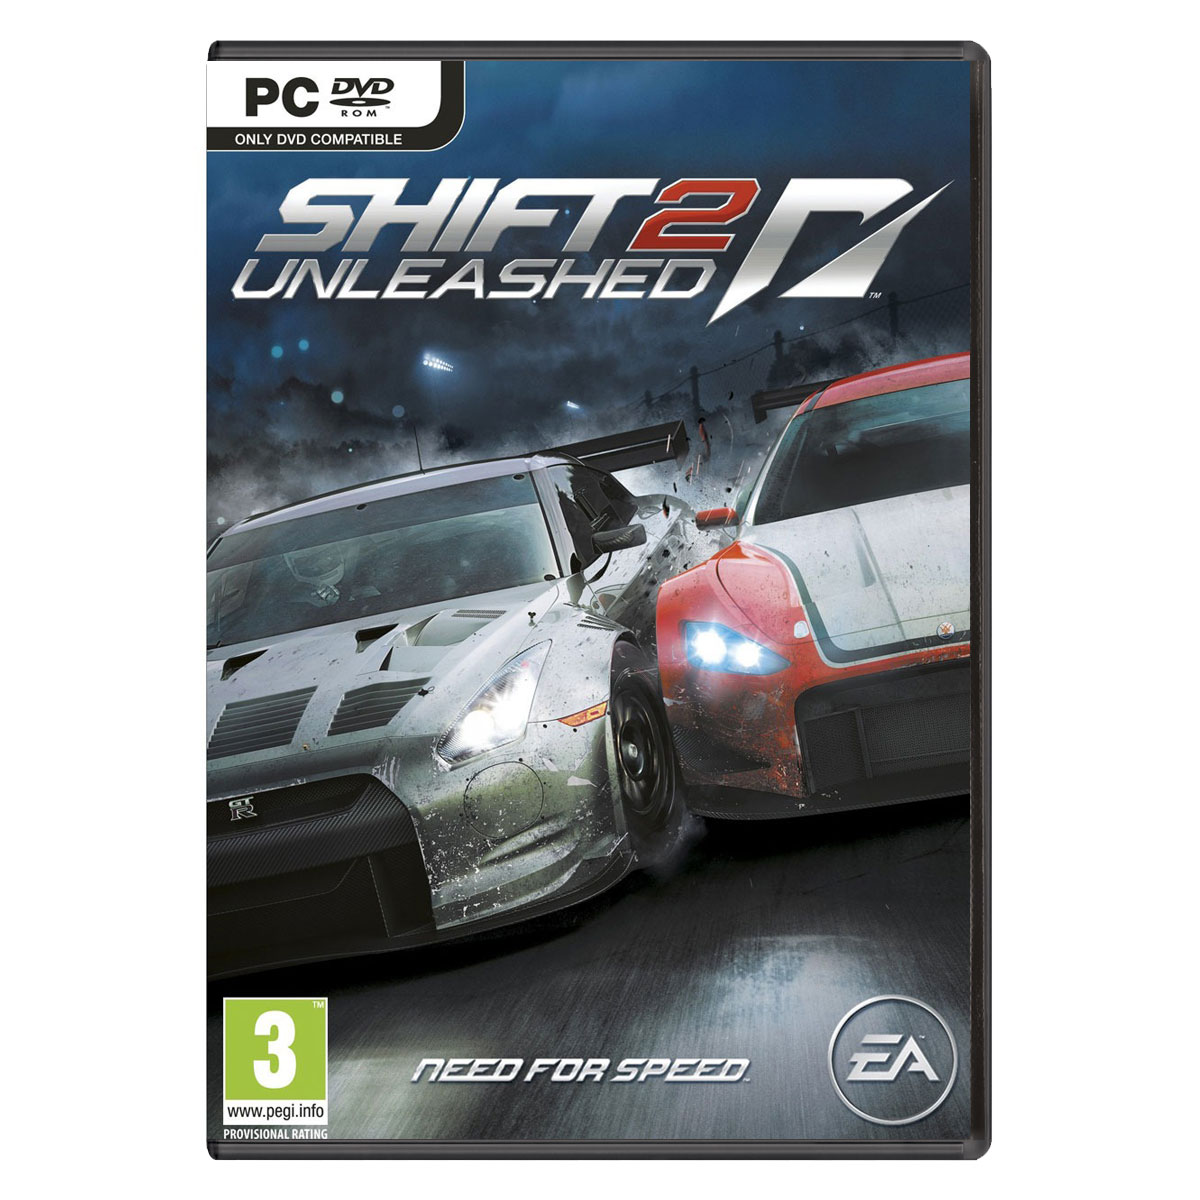 need for speed shift 2 unleashed pc jeux pc electronic arts sur. Black Bedroom Furniture Sets. Home Design Ideas